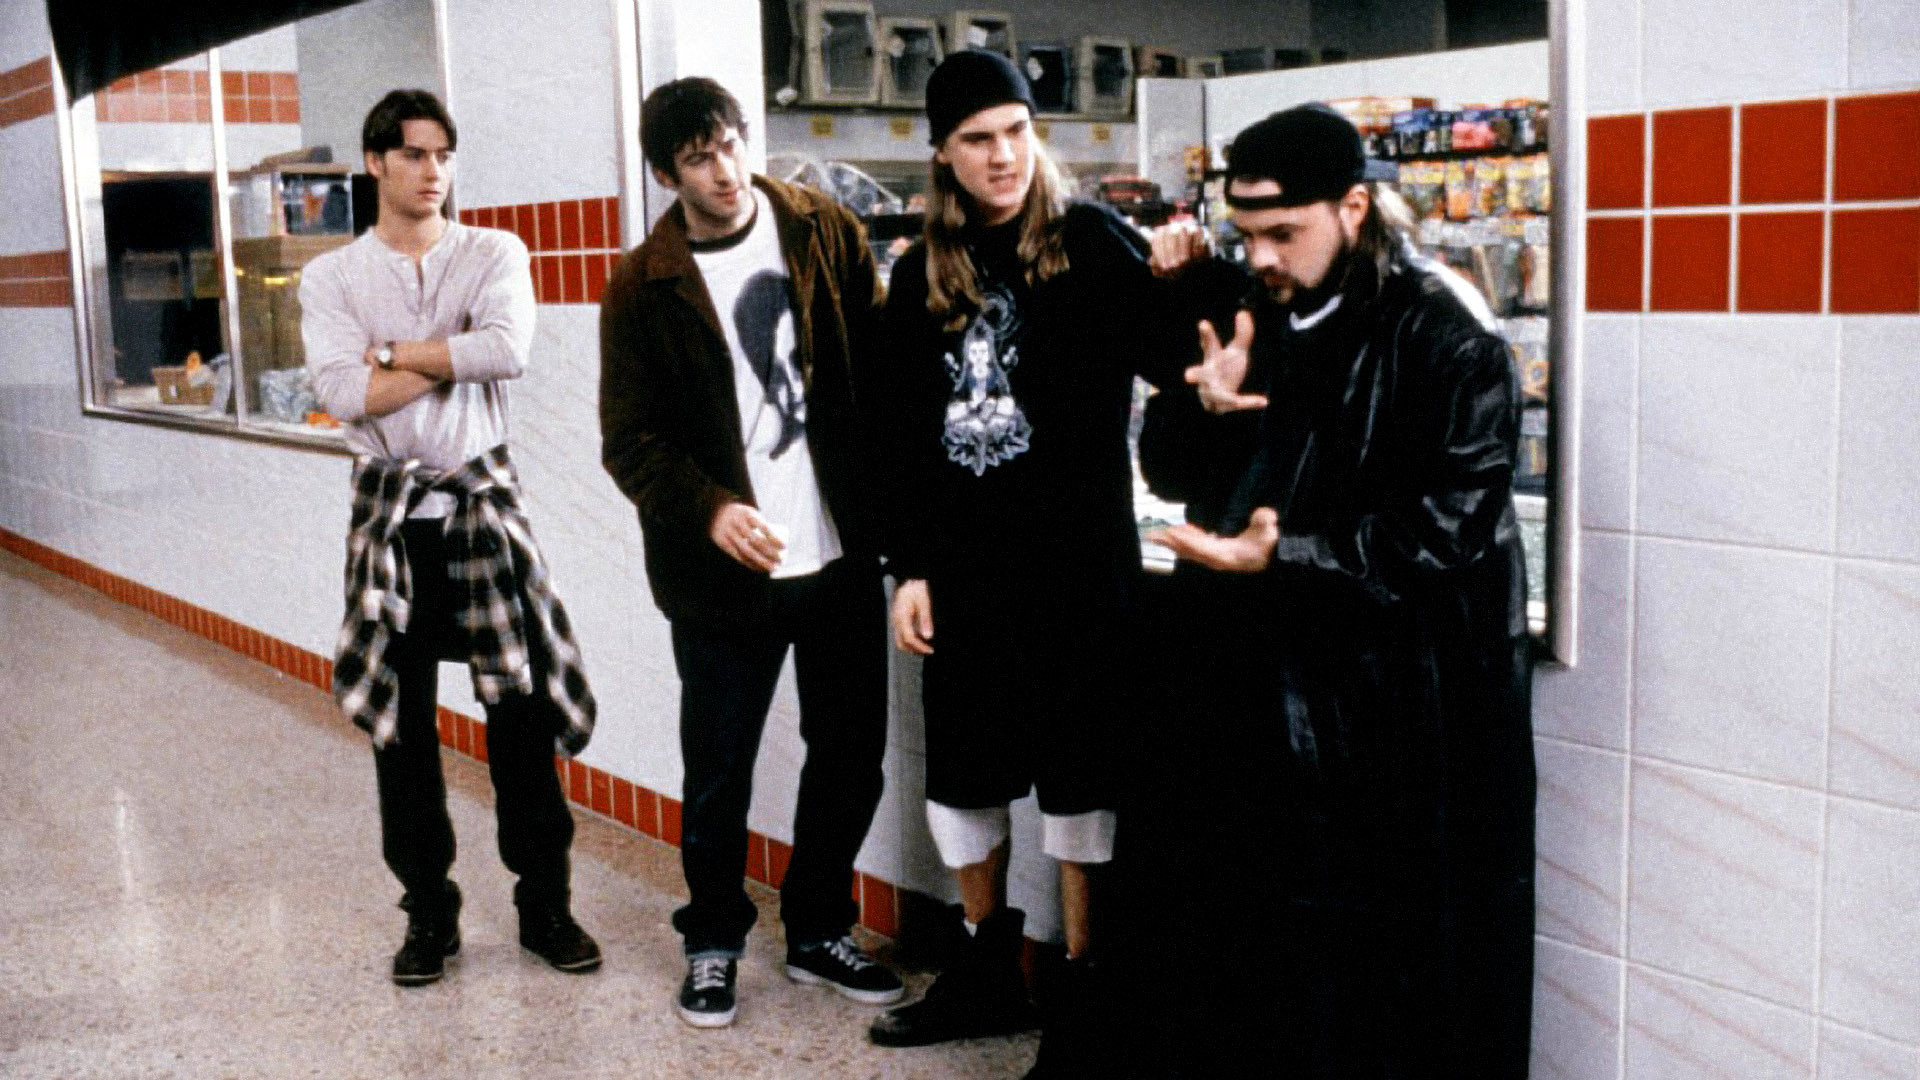 1920x1080 Why Mallrats 2 Can't Get Made